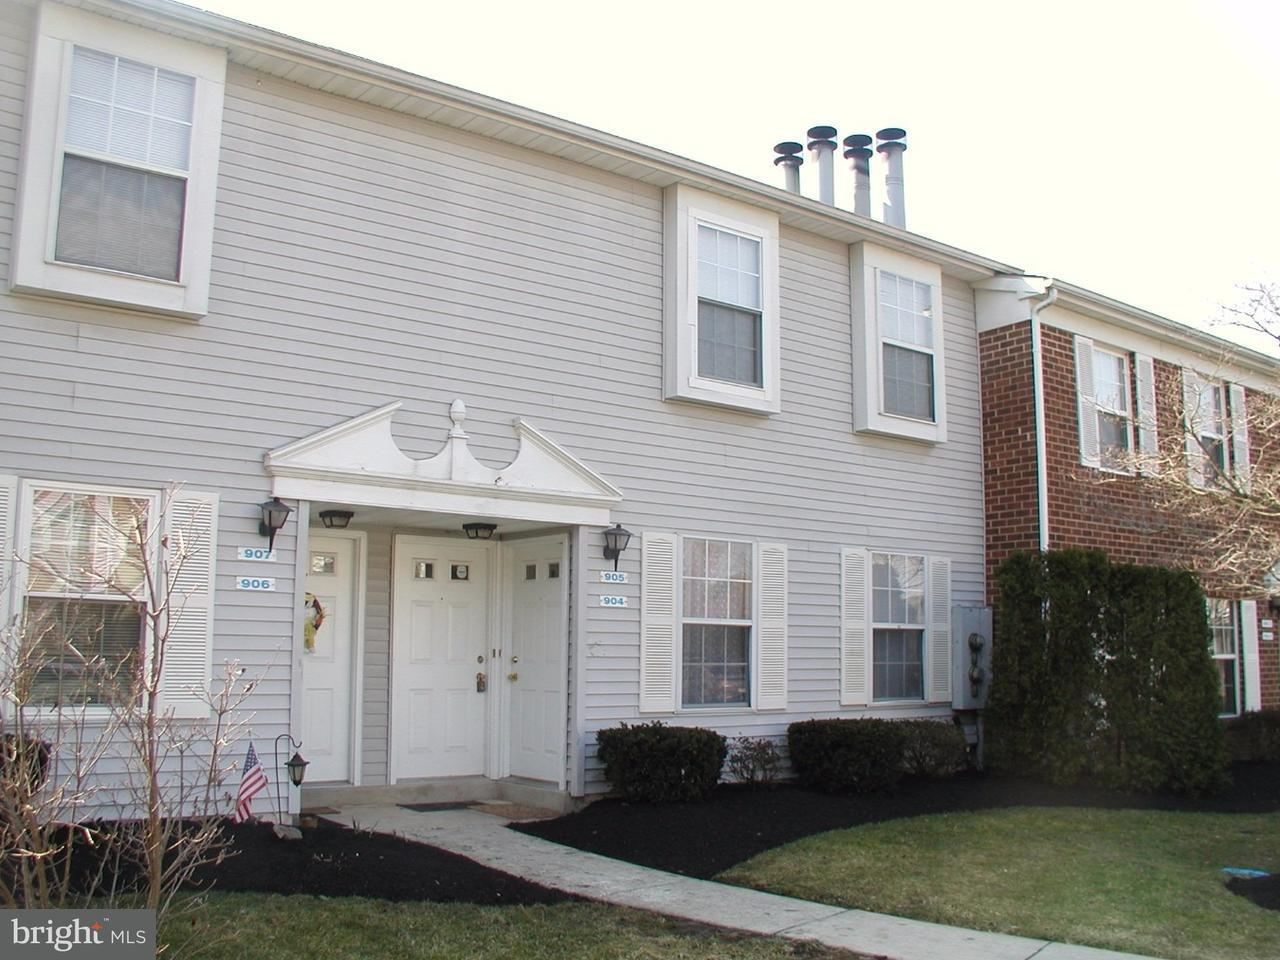 Single Family Home for Rent at 905 HUNTINGDON MEWS Clementon, New Jersey 08021 United States